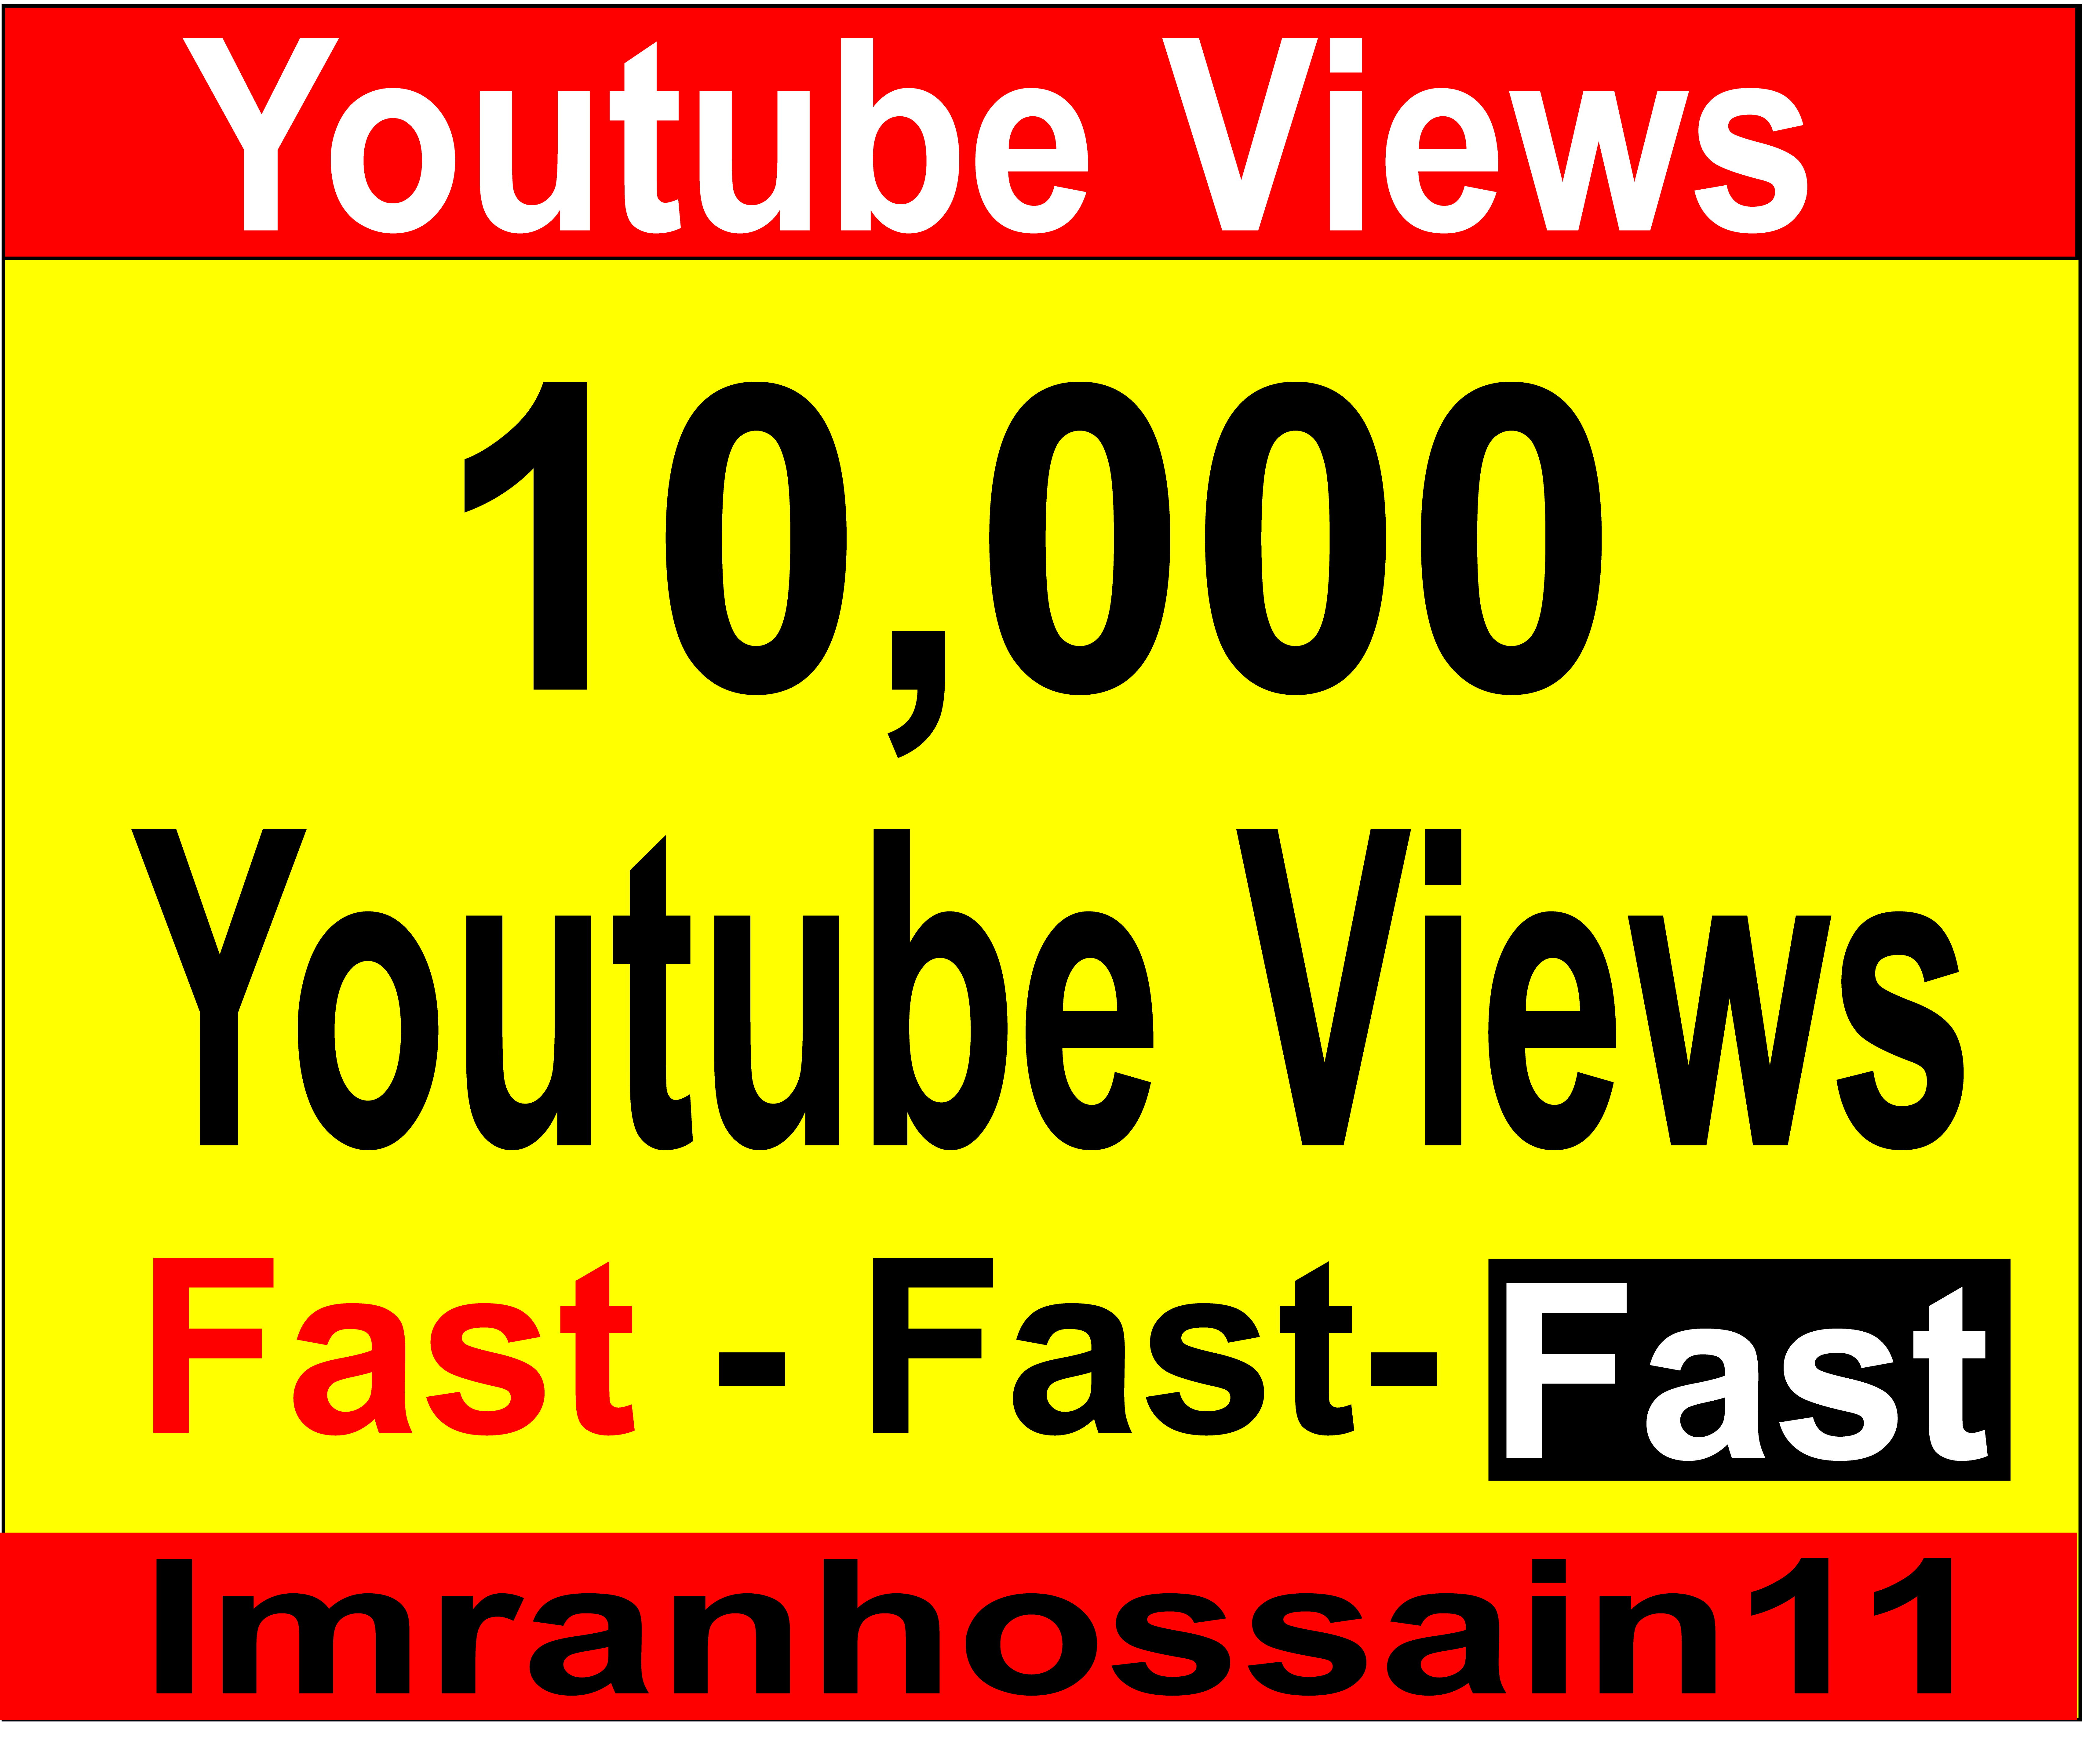 Supper Fast 5,000 to 8,000+ Nondrop 90% HR Adsence Safe Real Youtube Vie ws For your video